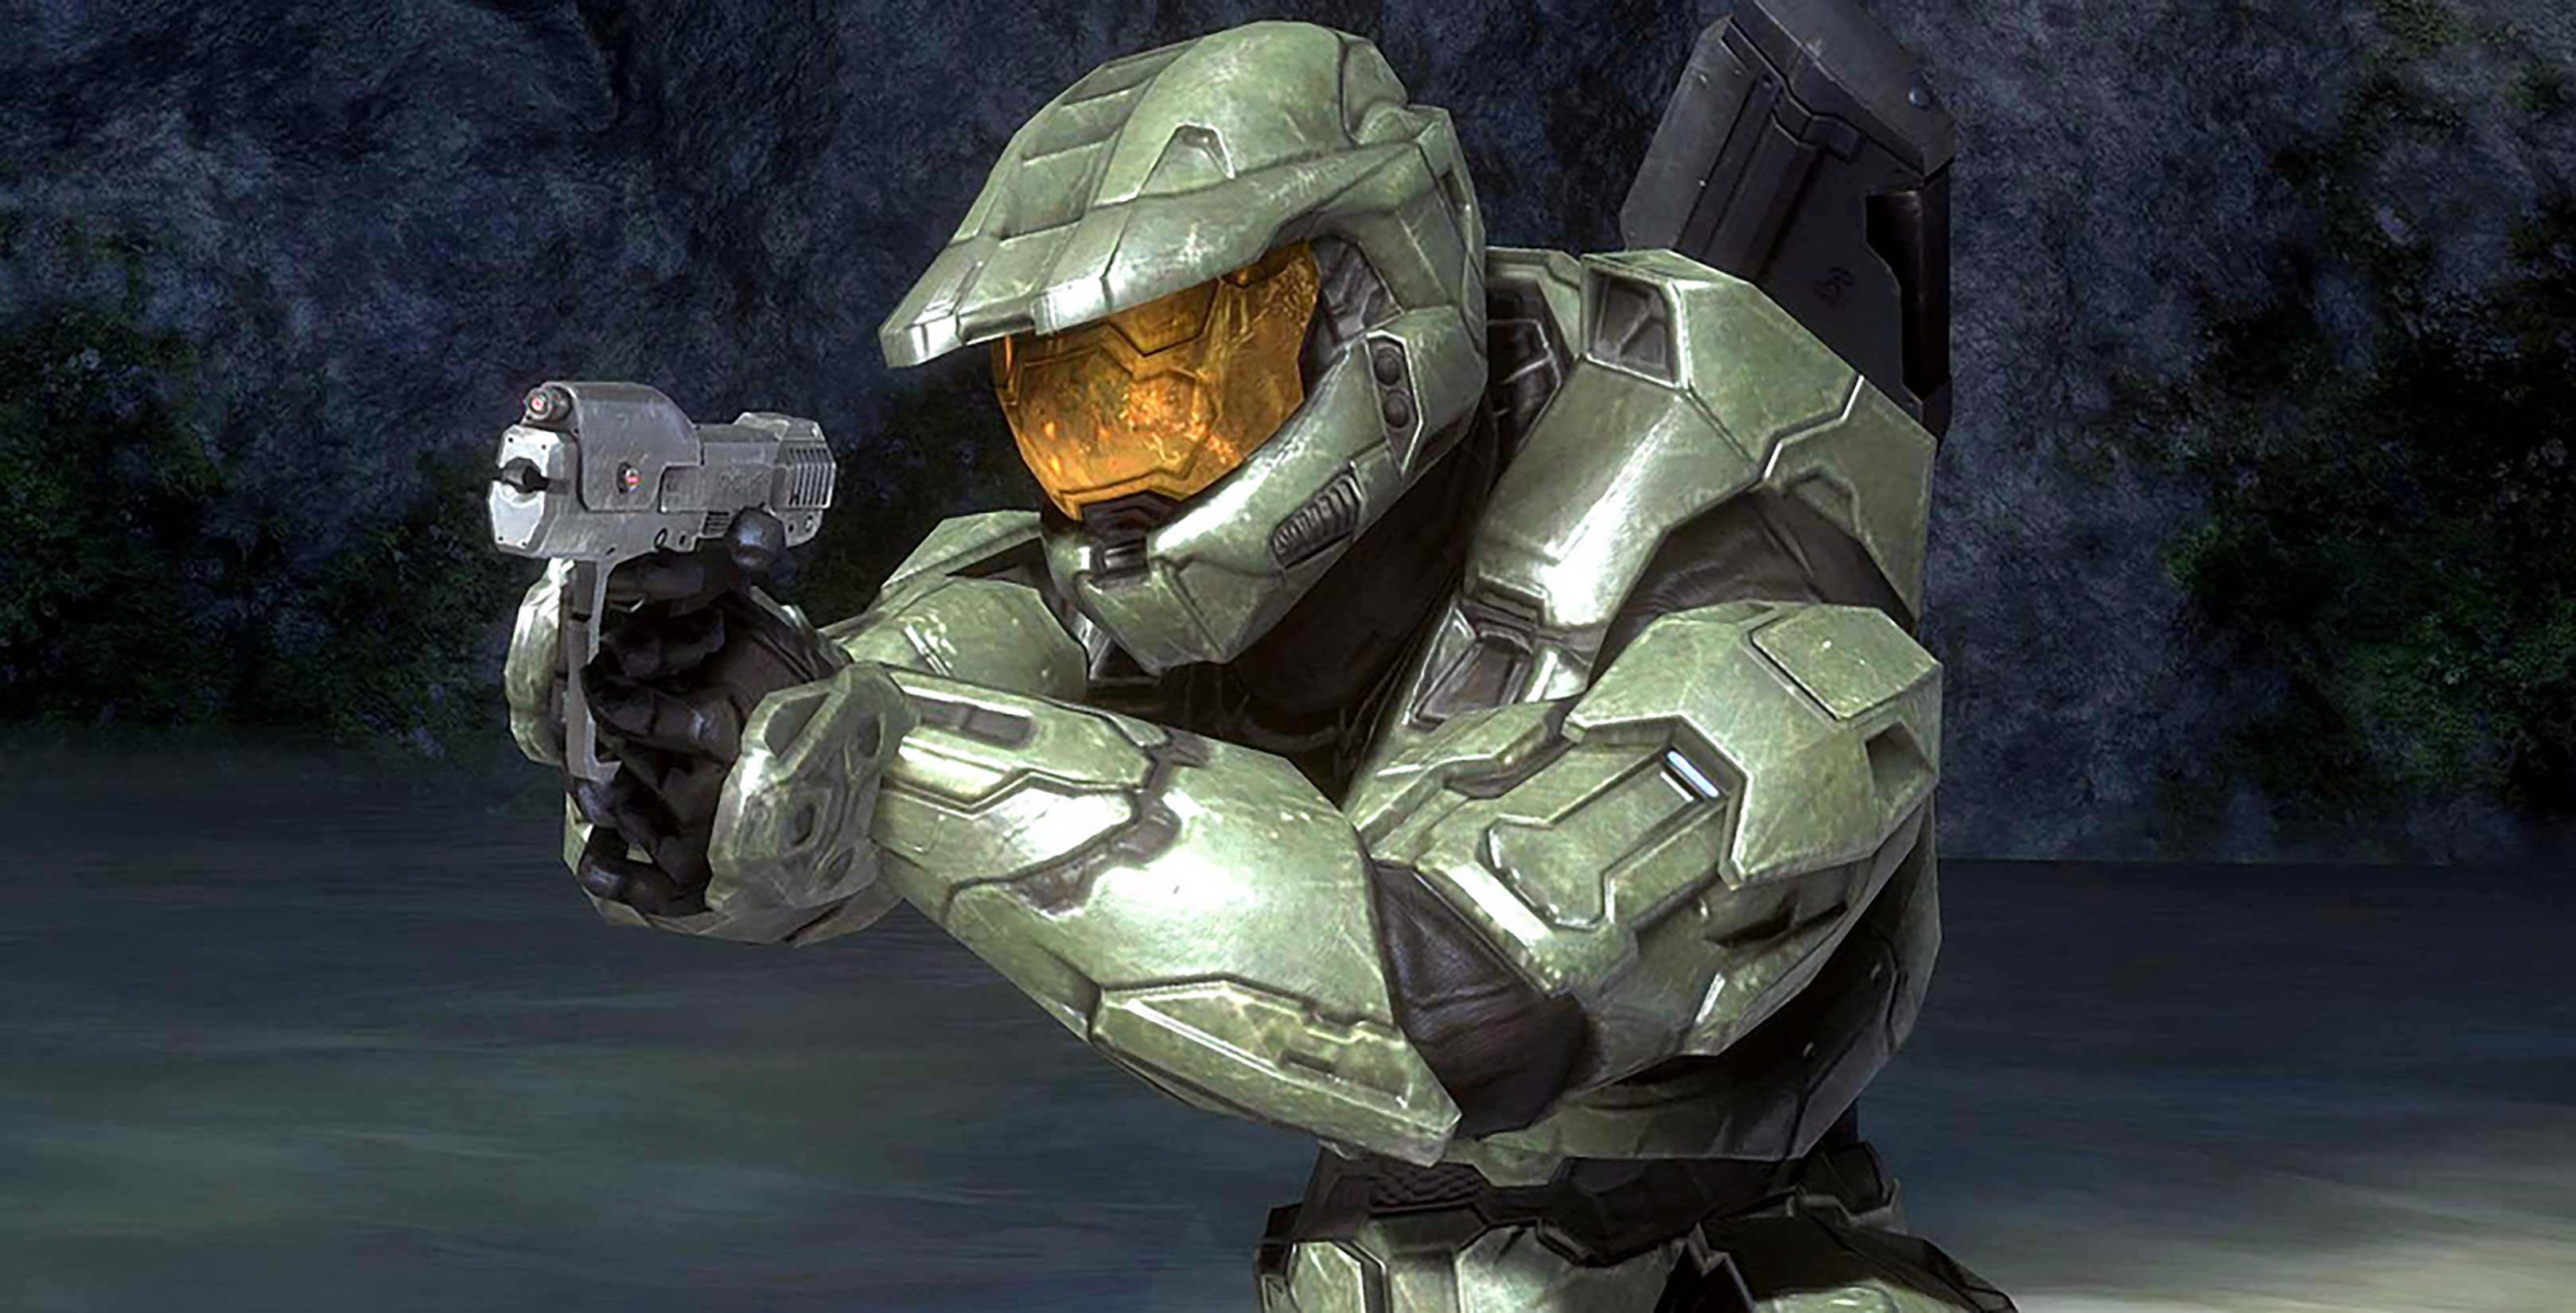 Halo Master Chief with pistol